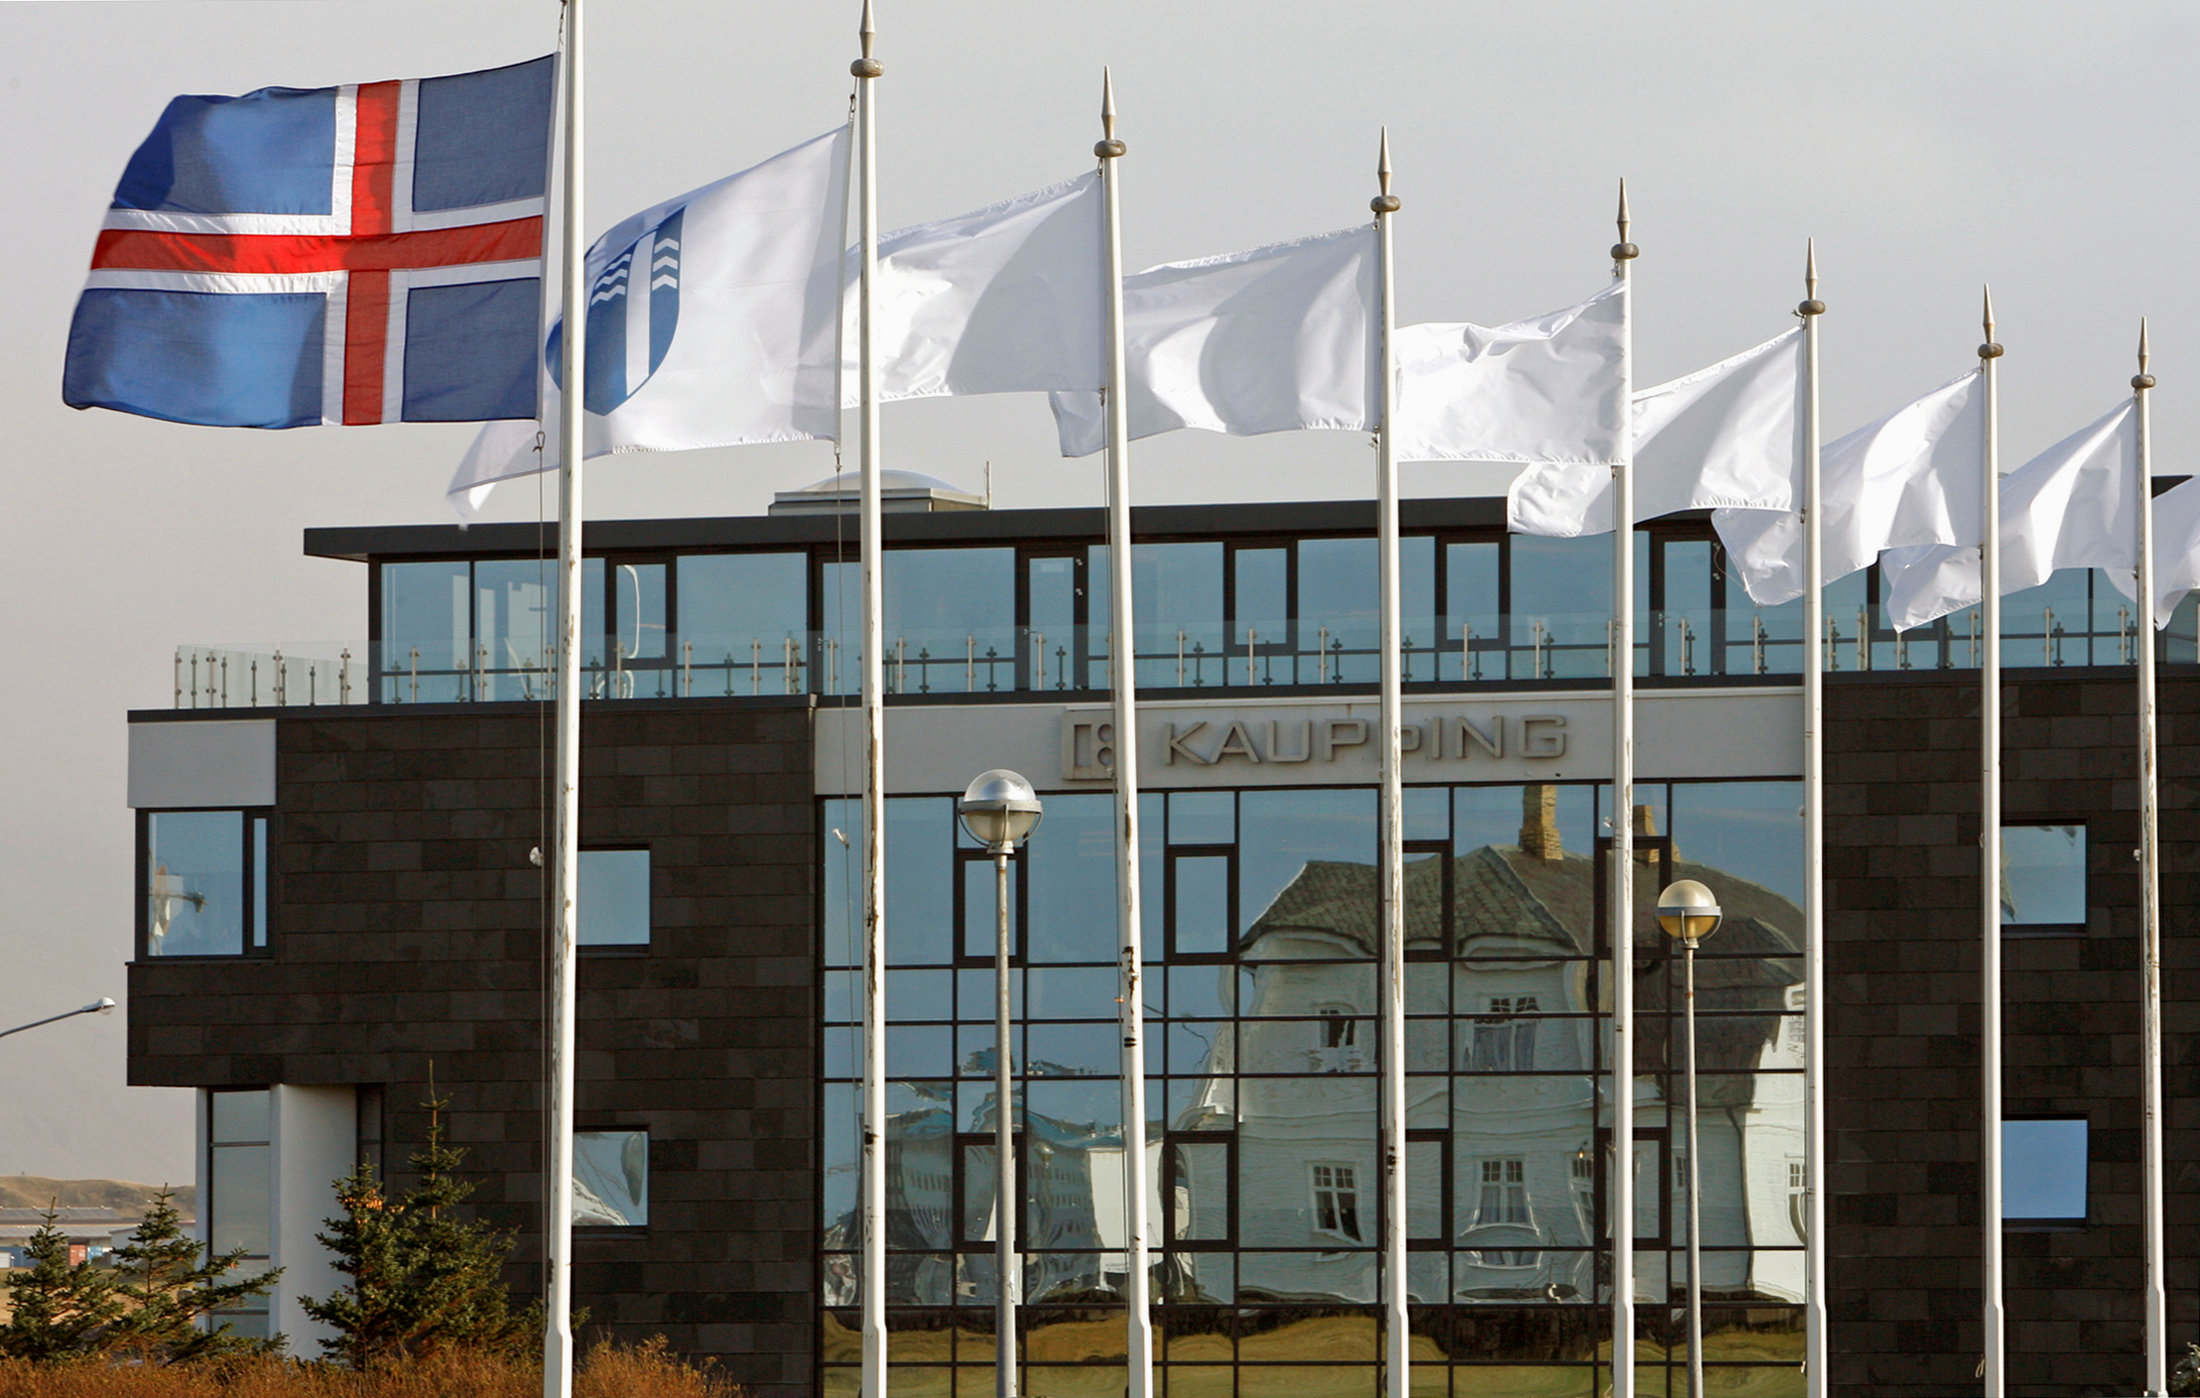 The Iceland flag flies next to the headquarters of Kaupthing Bank in Reykjavik October 9, 2008. (Bob Strong / Reuters File Photo)